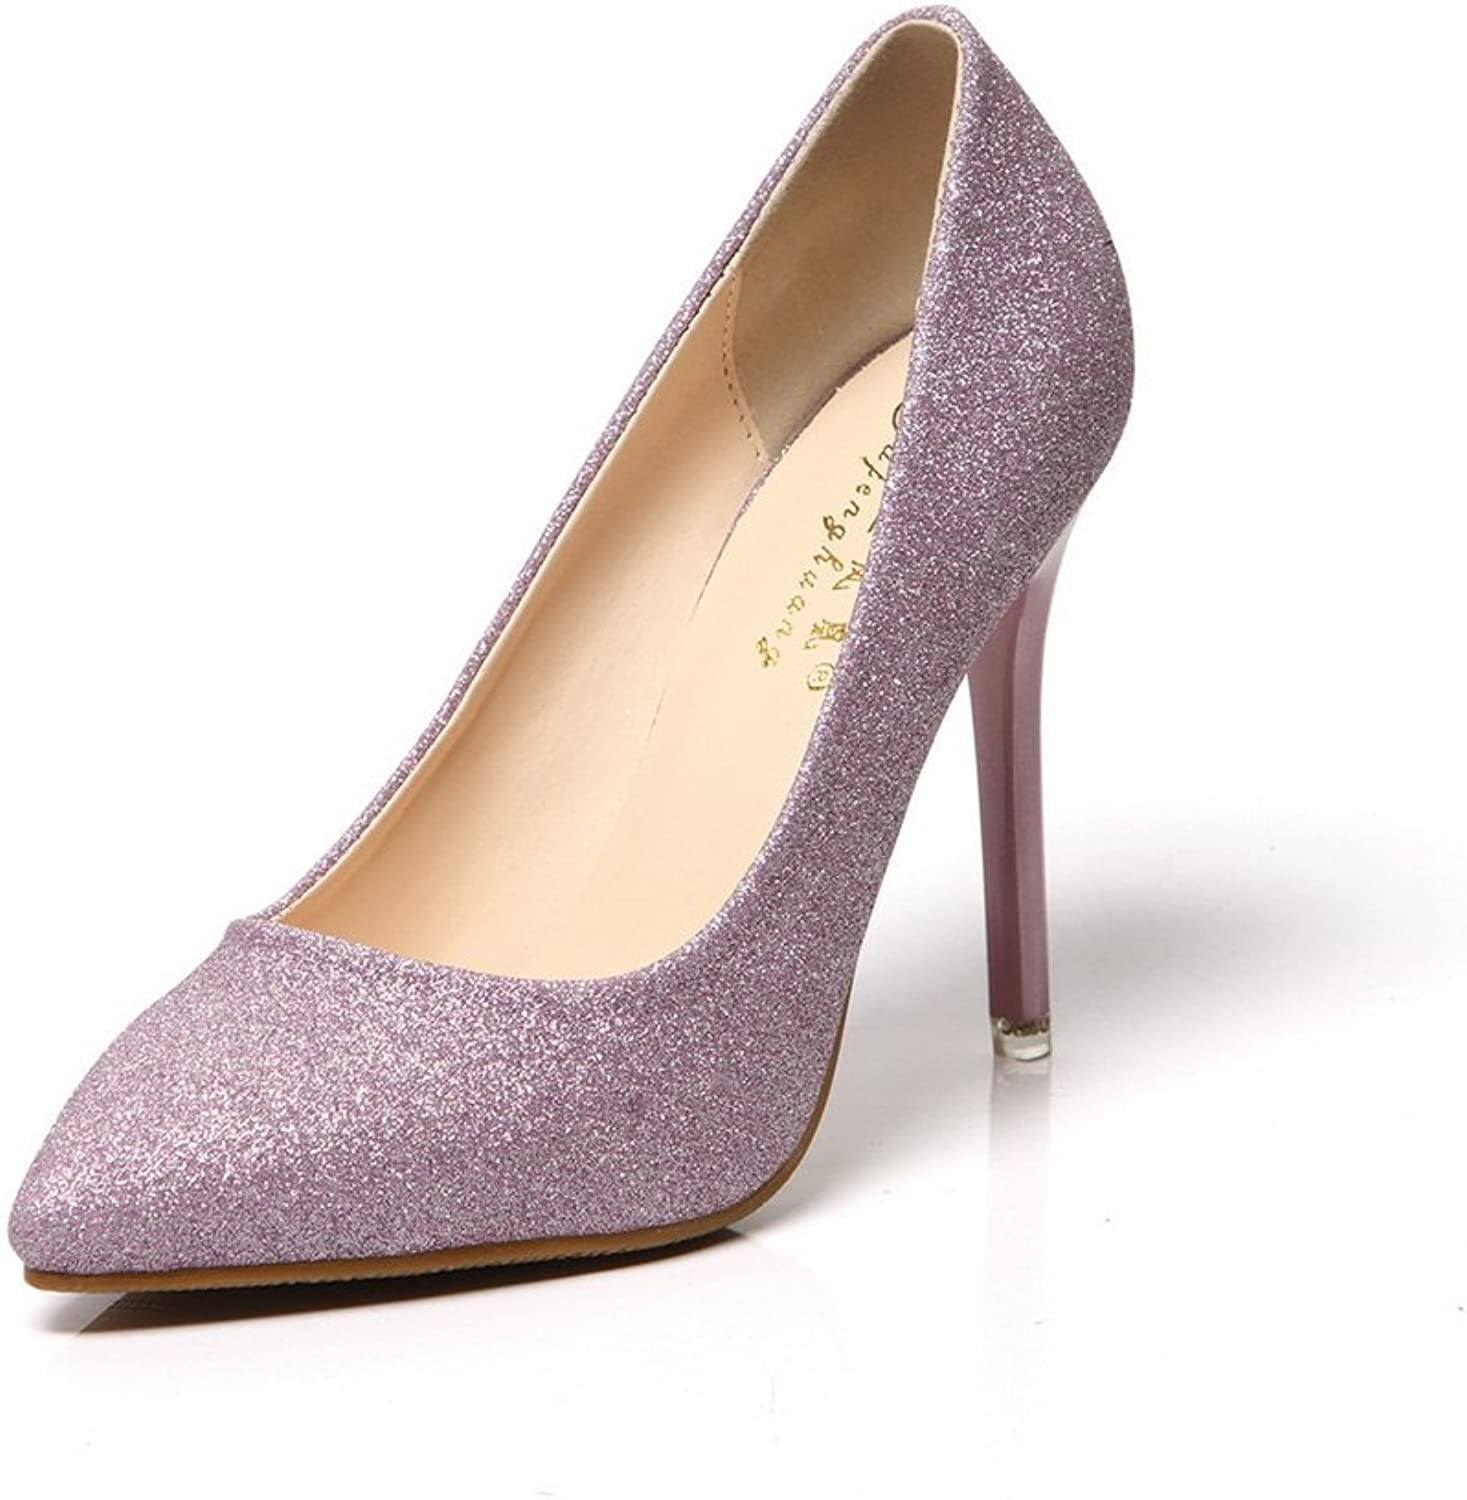 1TO9 Womens No-Closure Spikes Stilettos Pointed-Toe Purple Sequin Pumps shoes - 7 B(M) US